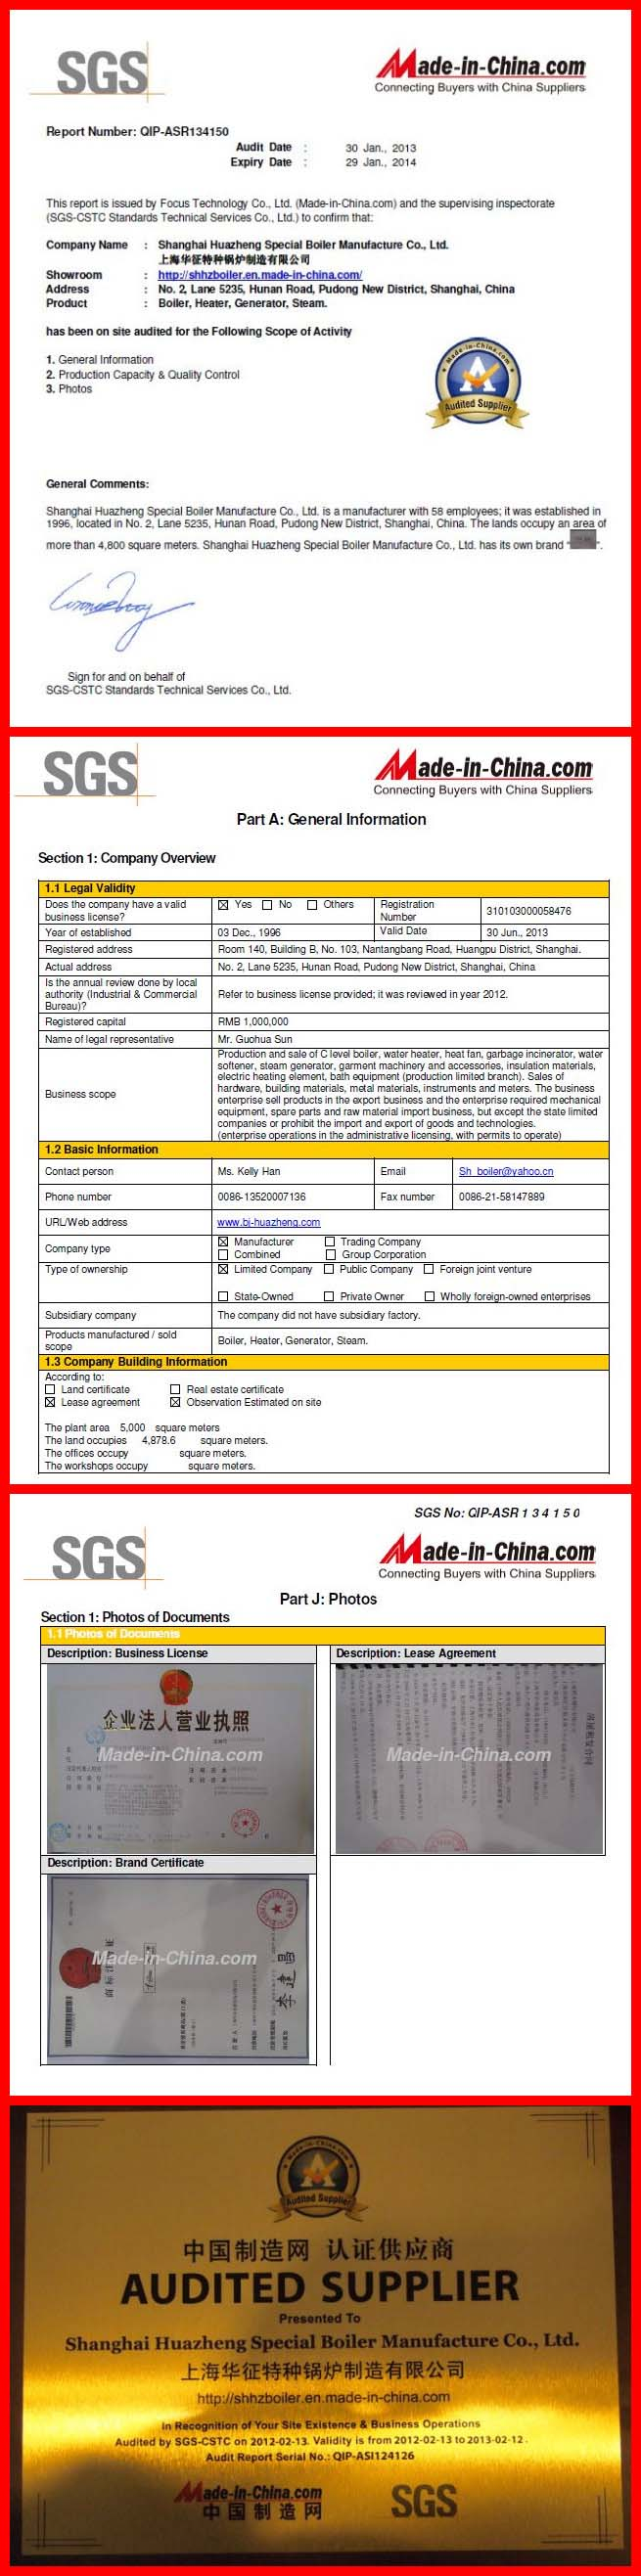 Audited by the SGS Group